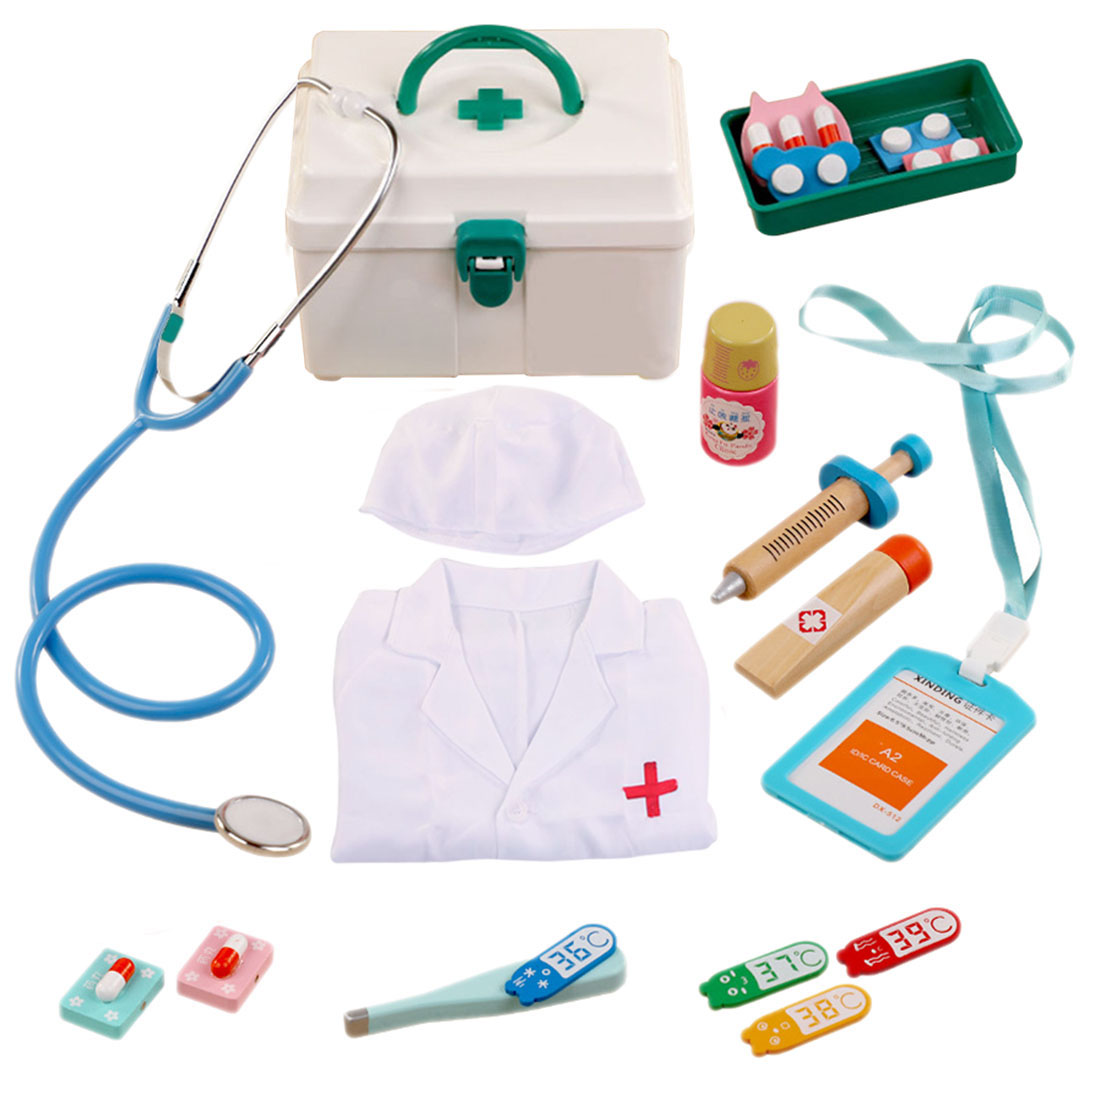 14Pcs/set Children Pretend Play Medical Kit Role Play Doctor Playset With Doctor's Overall For Kids Birthday Gift Set-Green/Pink